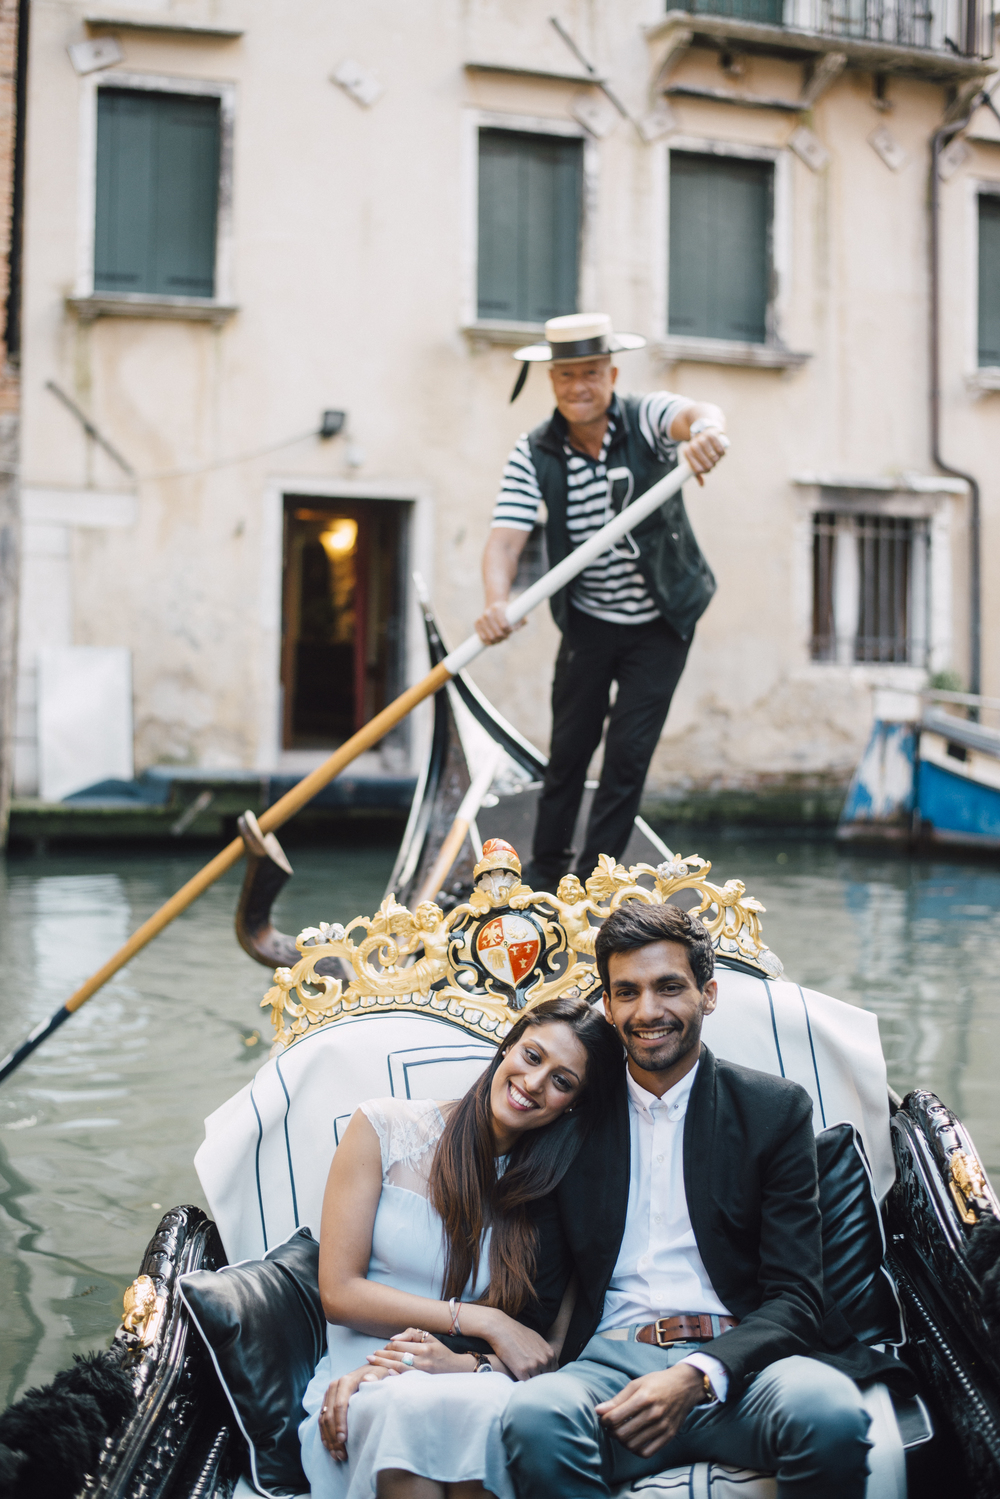 Romantic gondola ride down the canals of Venice